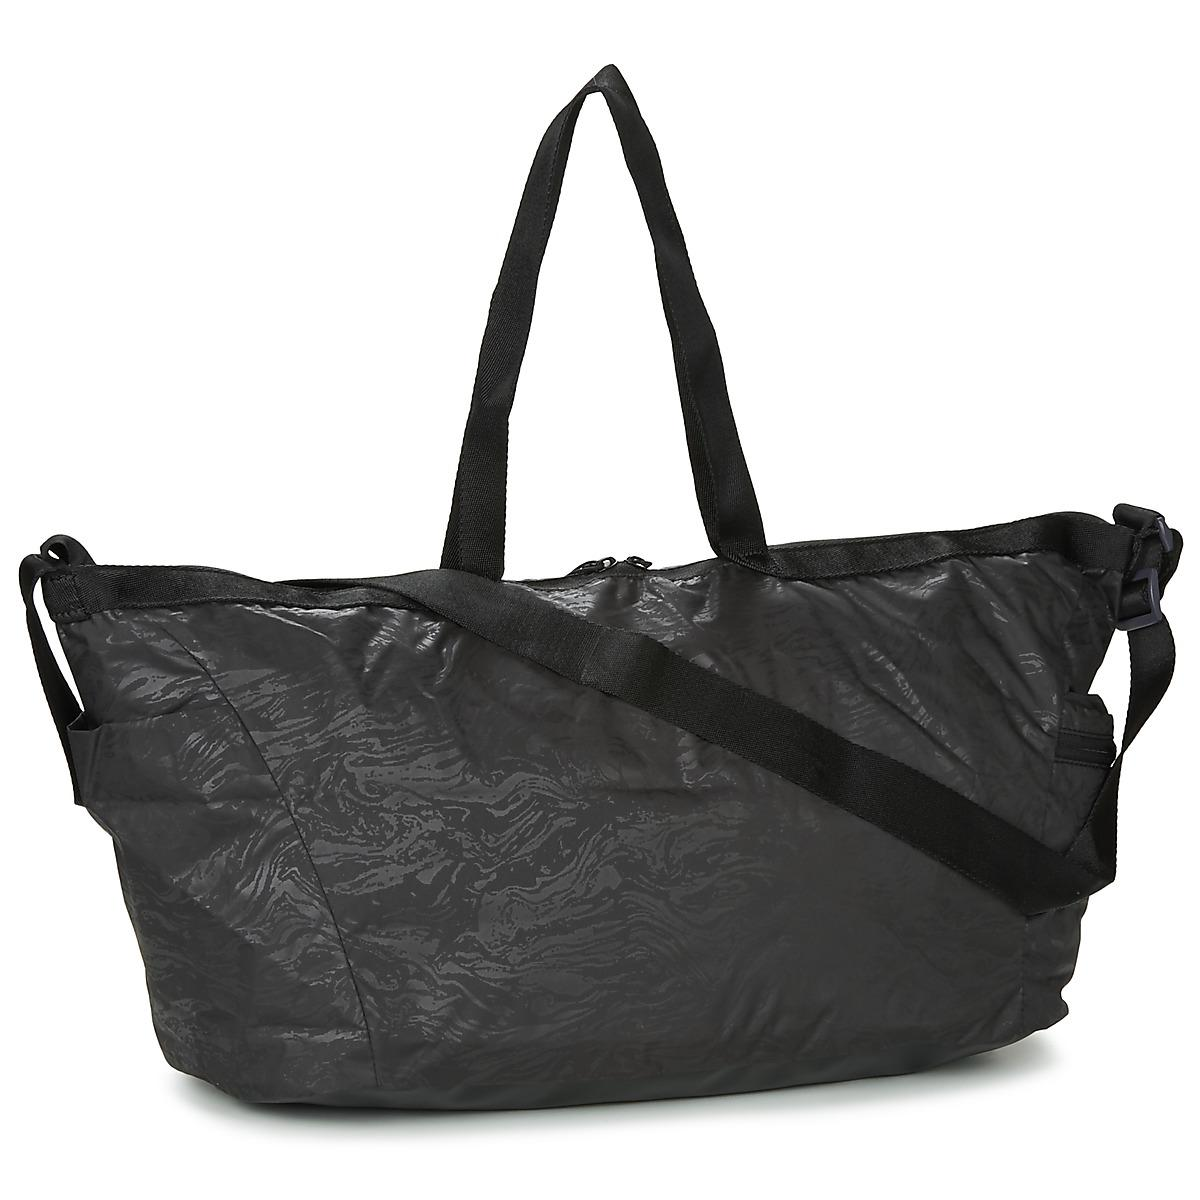 1ef1b896b3 PUMA Fit At Workout Bag Women's Sports Bag In Black in Black - Lyst